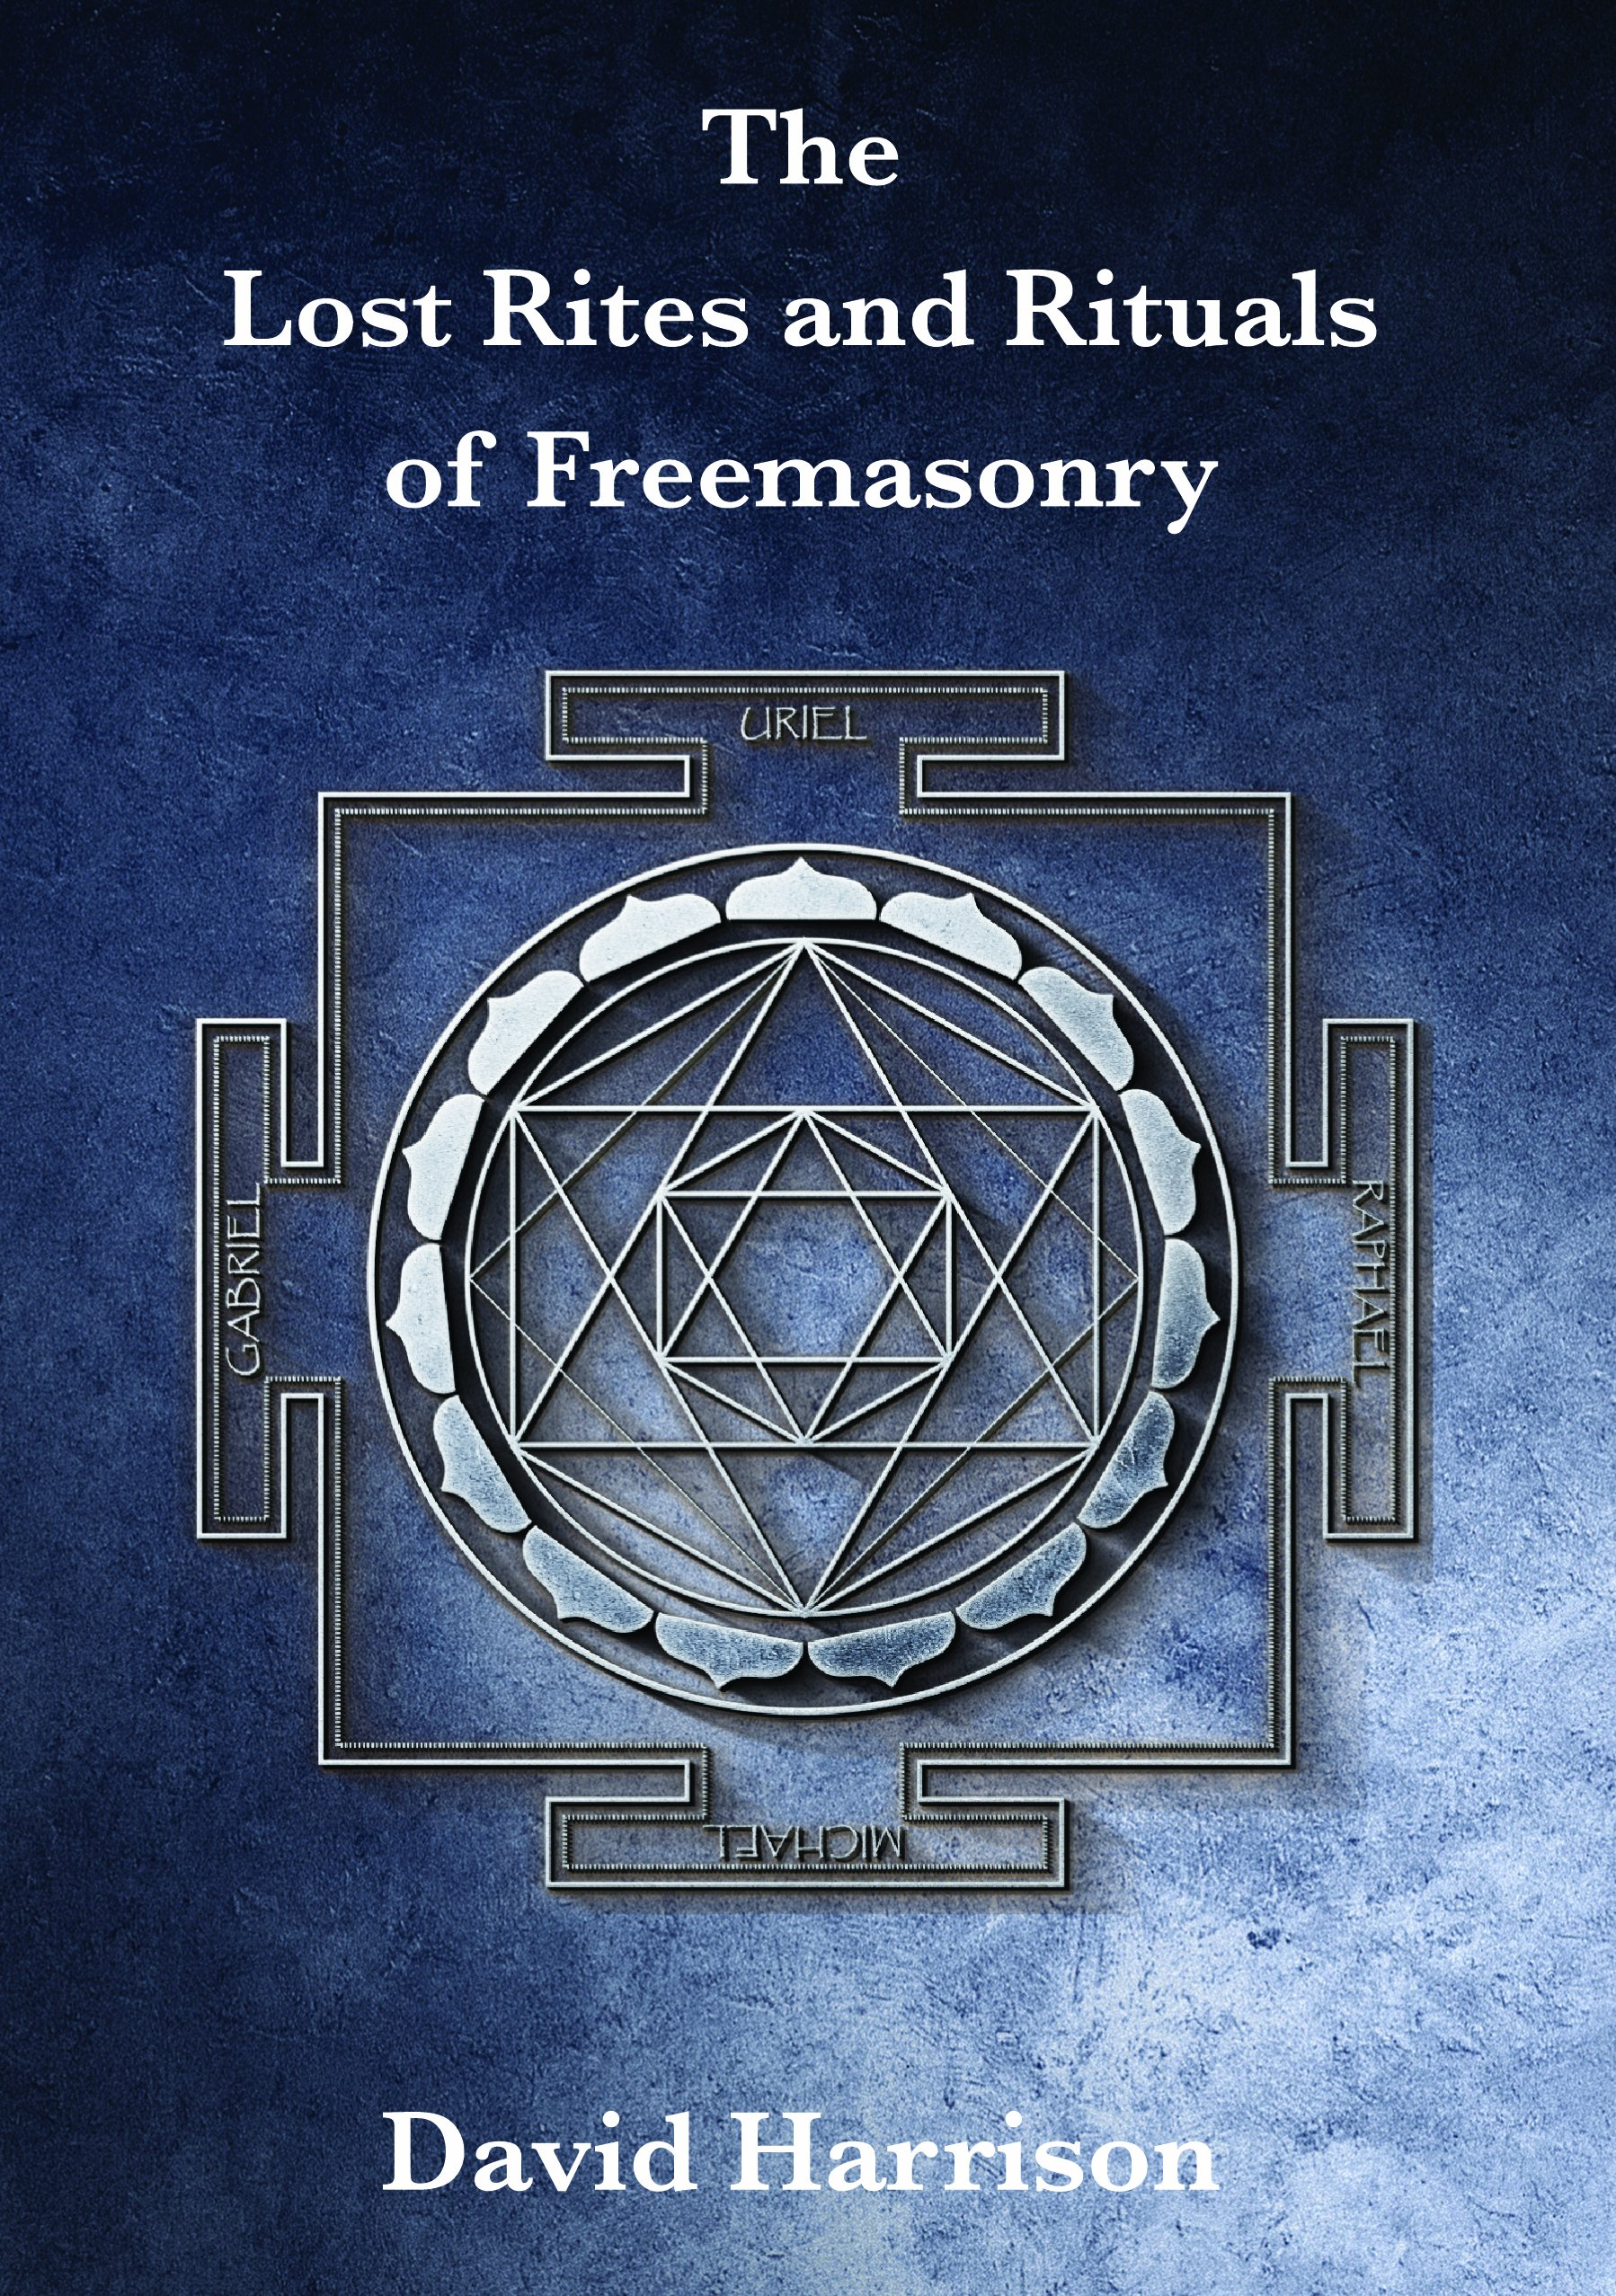 The Lost Rites and Rituals of Freemasonry: 9780853185413